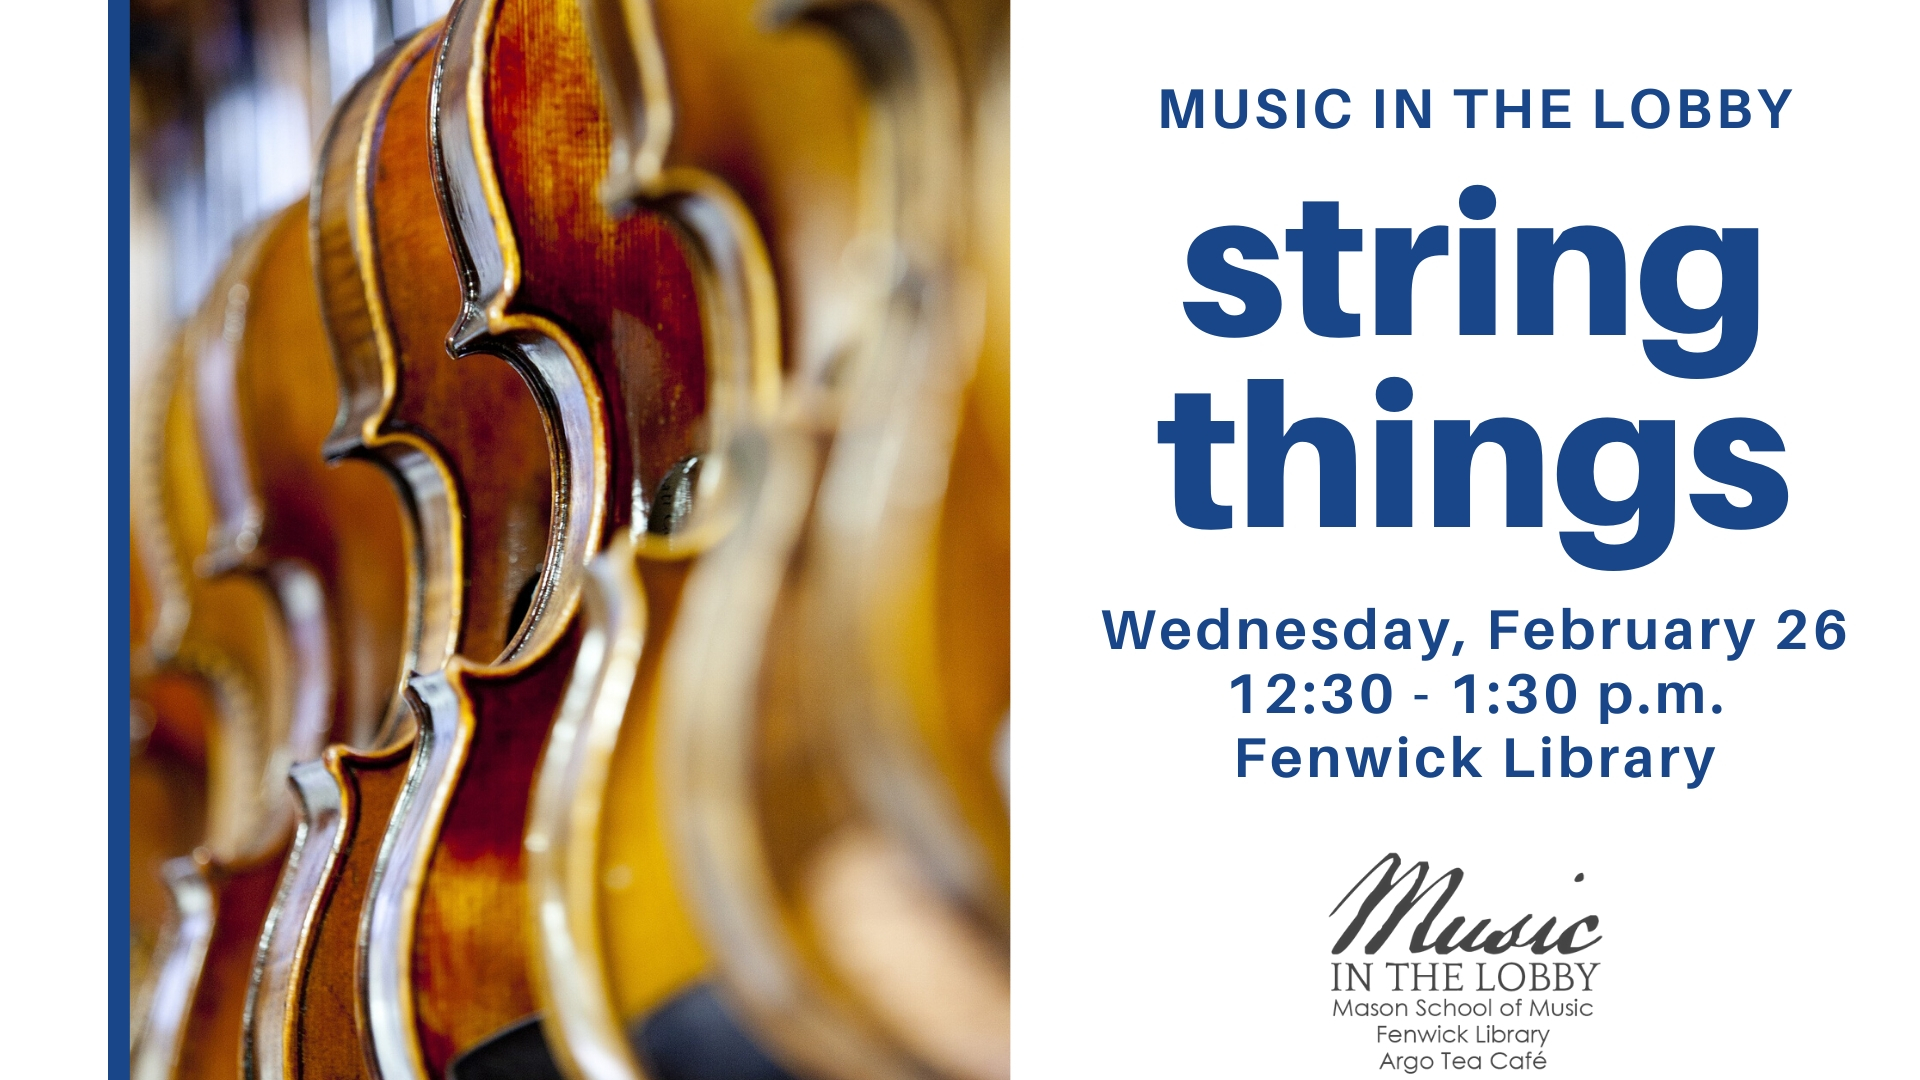 Music in the Lobby: string things